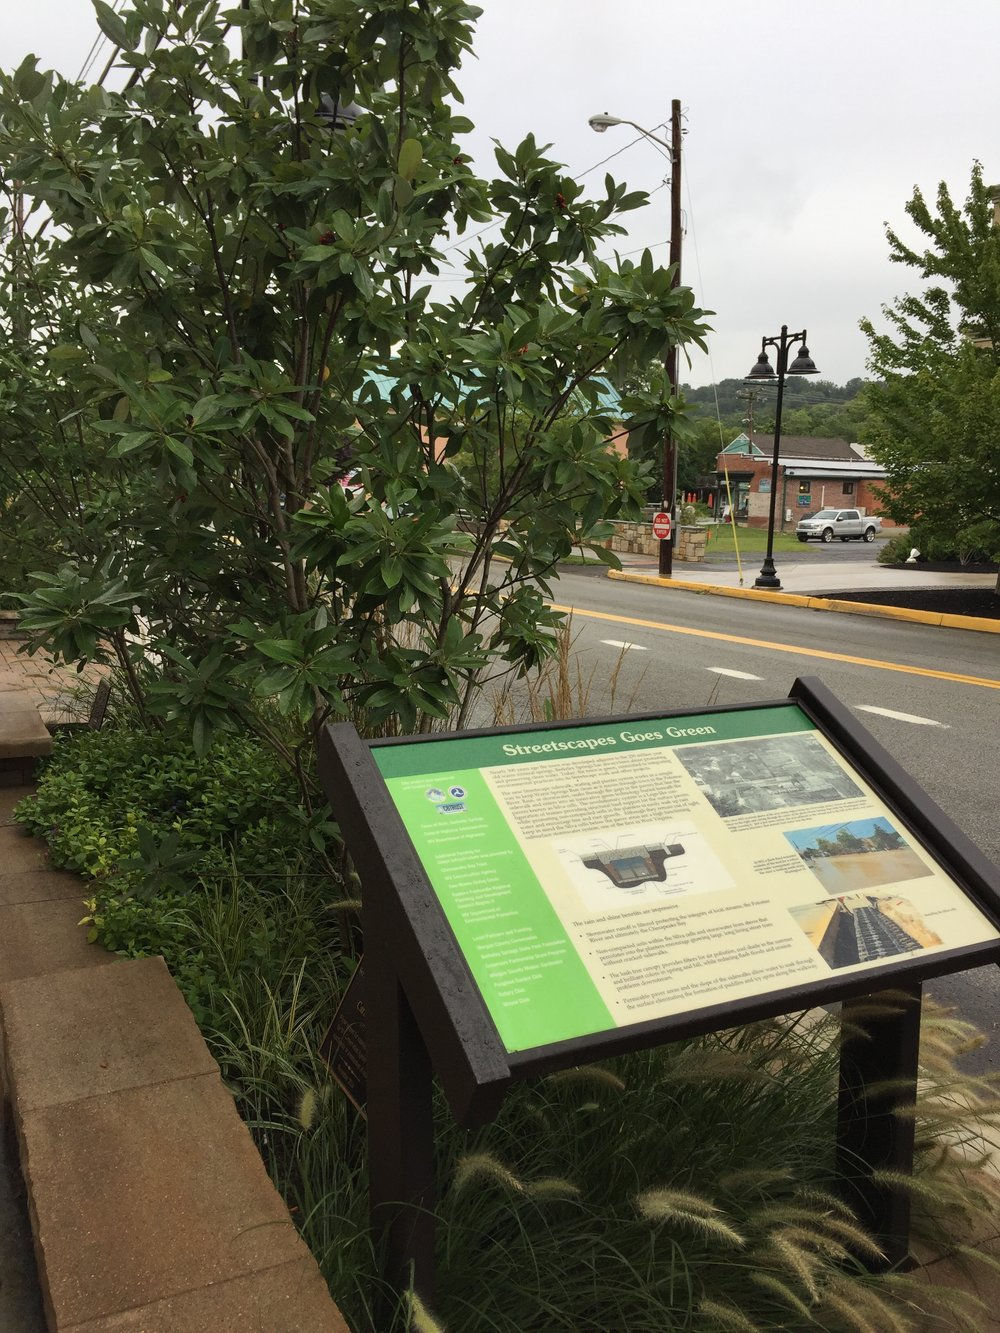 This innovative project helped reduce flooding on one of the main streets in Berkeley Springs.